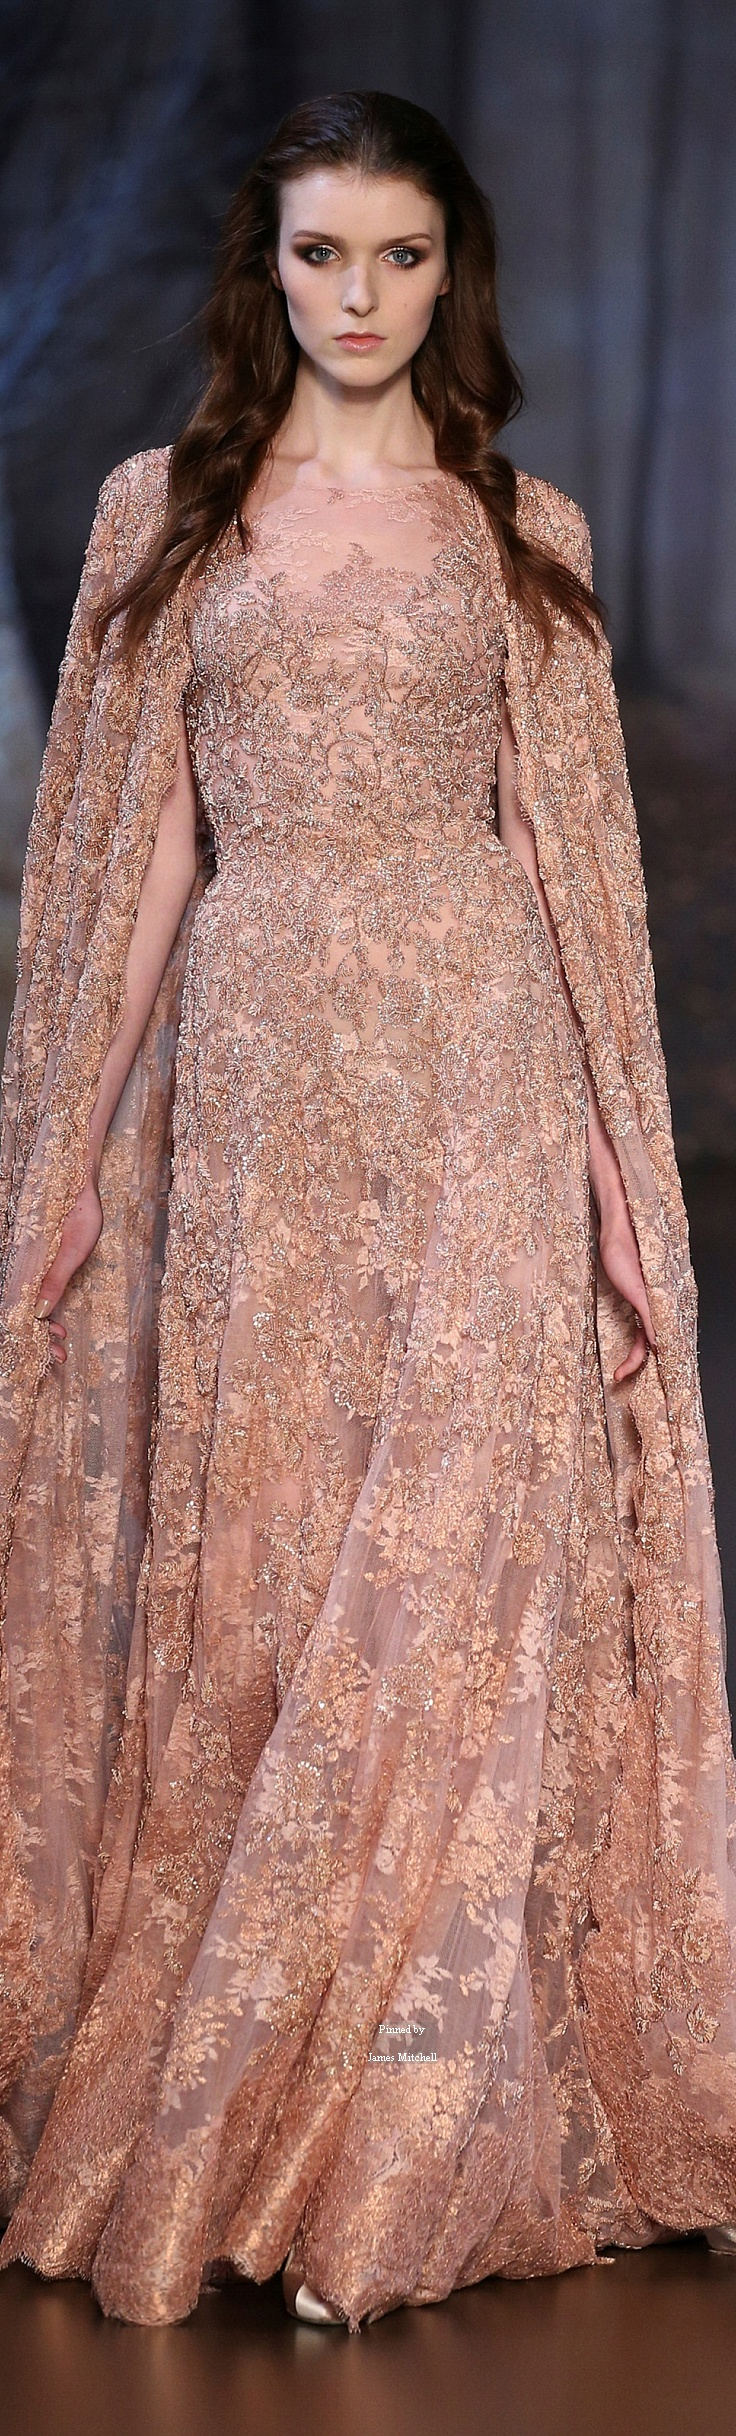 Ralph & Russo Haute Couture Fall Winter 2015-16 collection jαɢlαdy ...